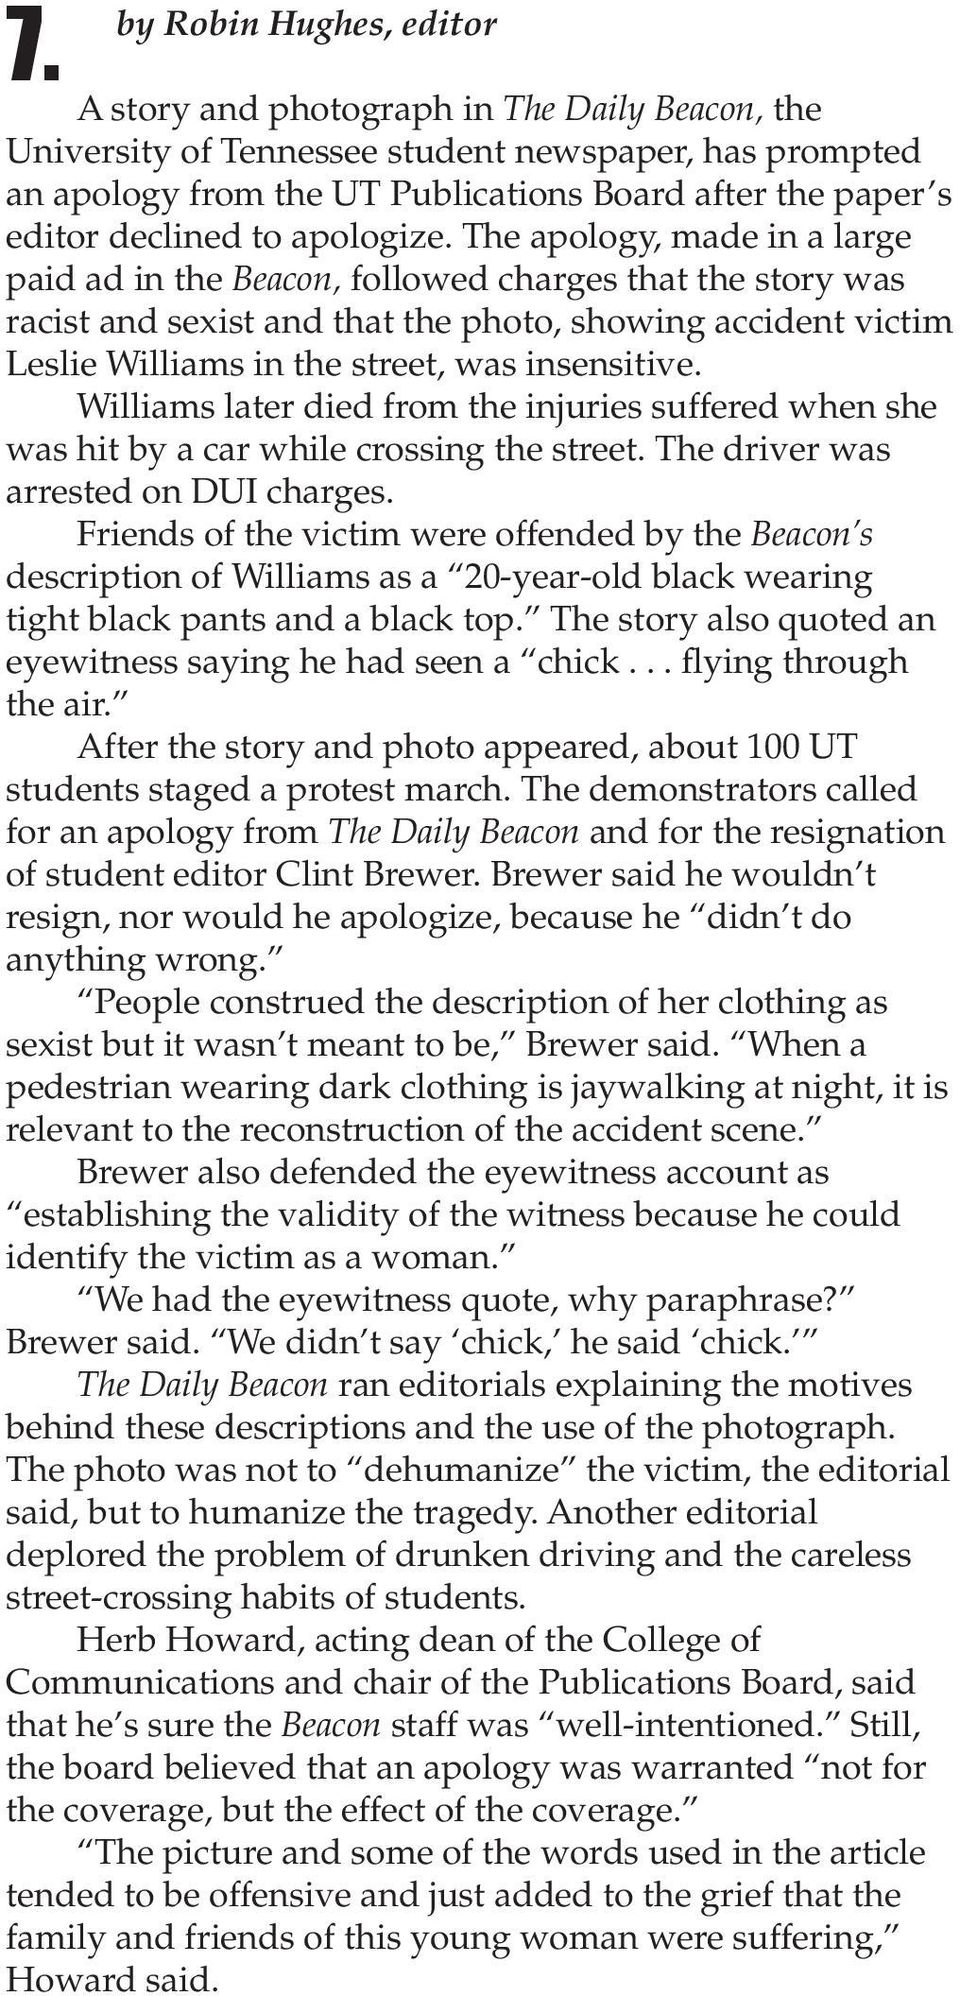 The apology, made in a large paid ad in the Beacon, followed charges that the story was racist and sexist and that the photo, showing accident victim Leslie Williams in the street, was insensitive.